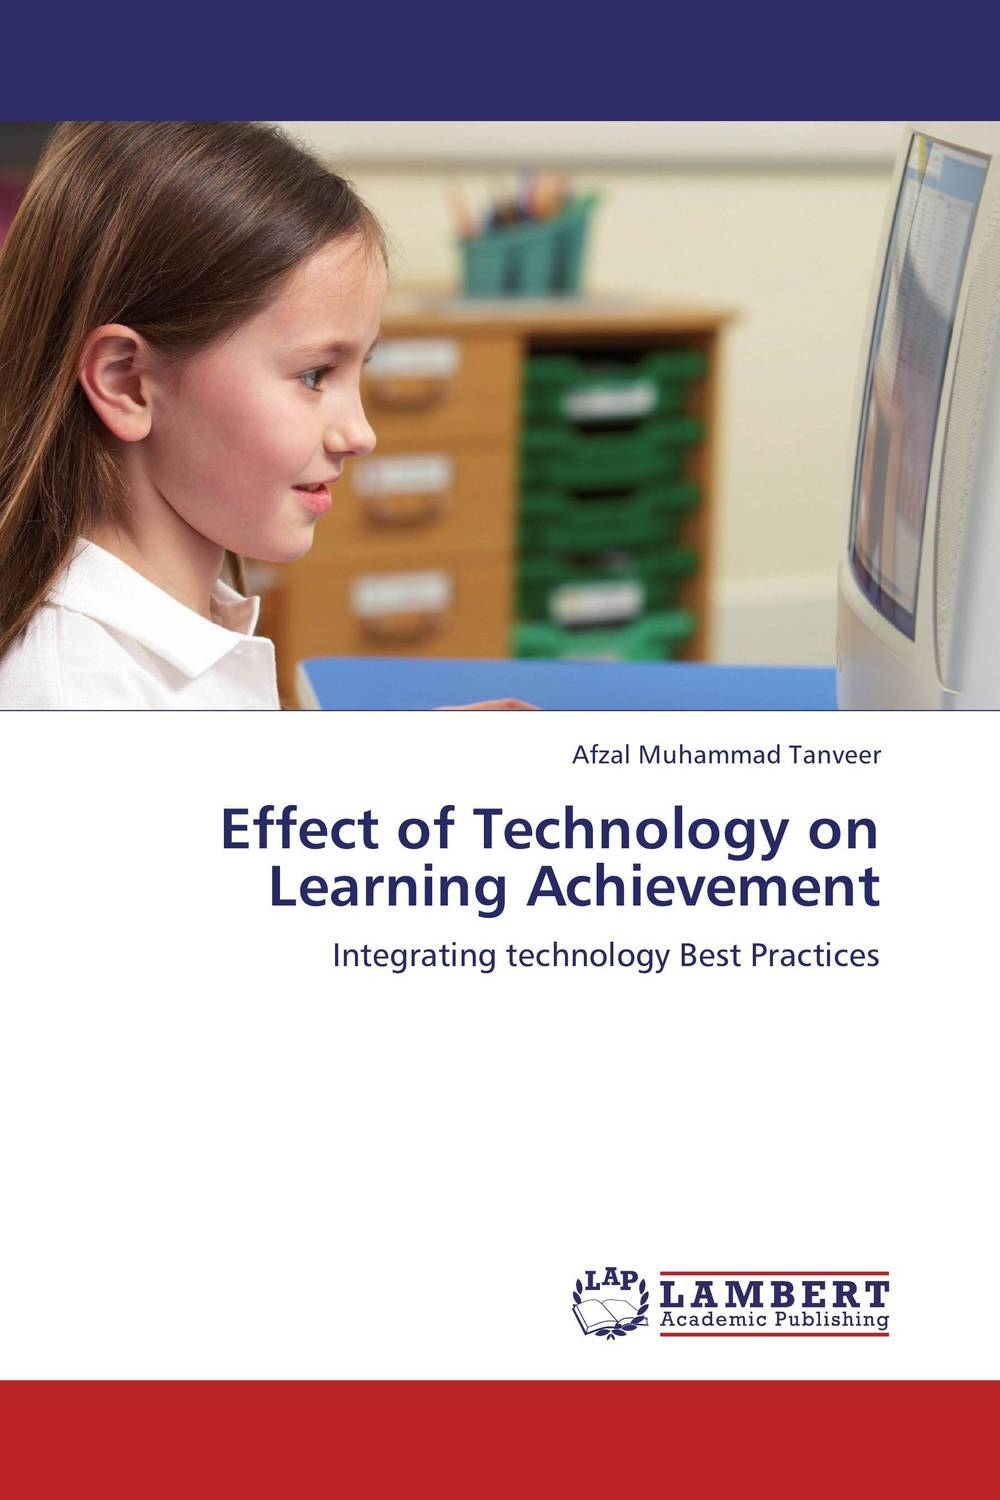 Effect of Technology on Learning Achievement